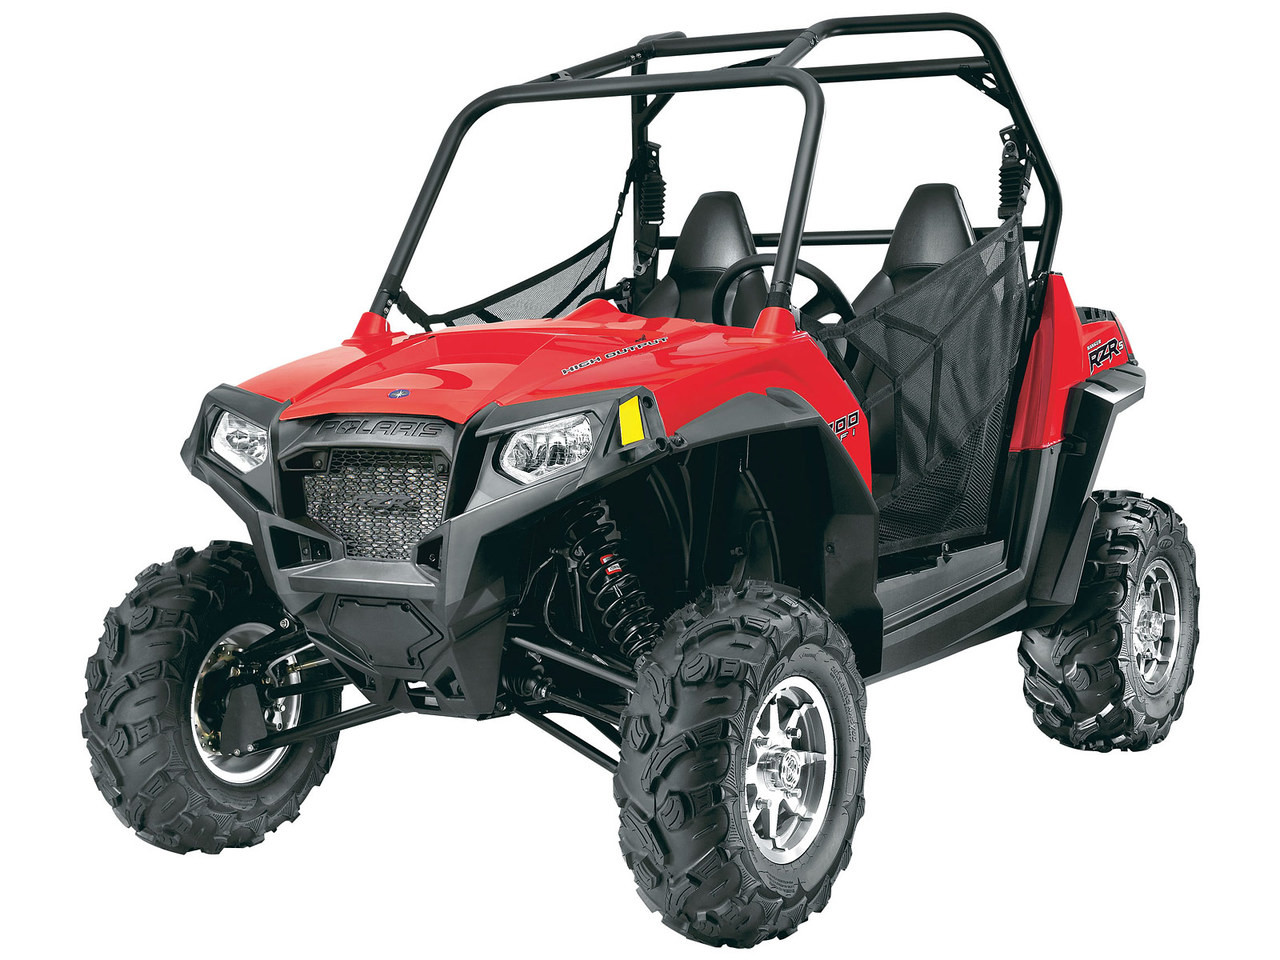 Stock RZR 800 has a lot of room to still ride better